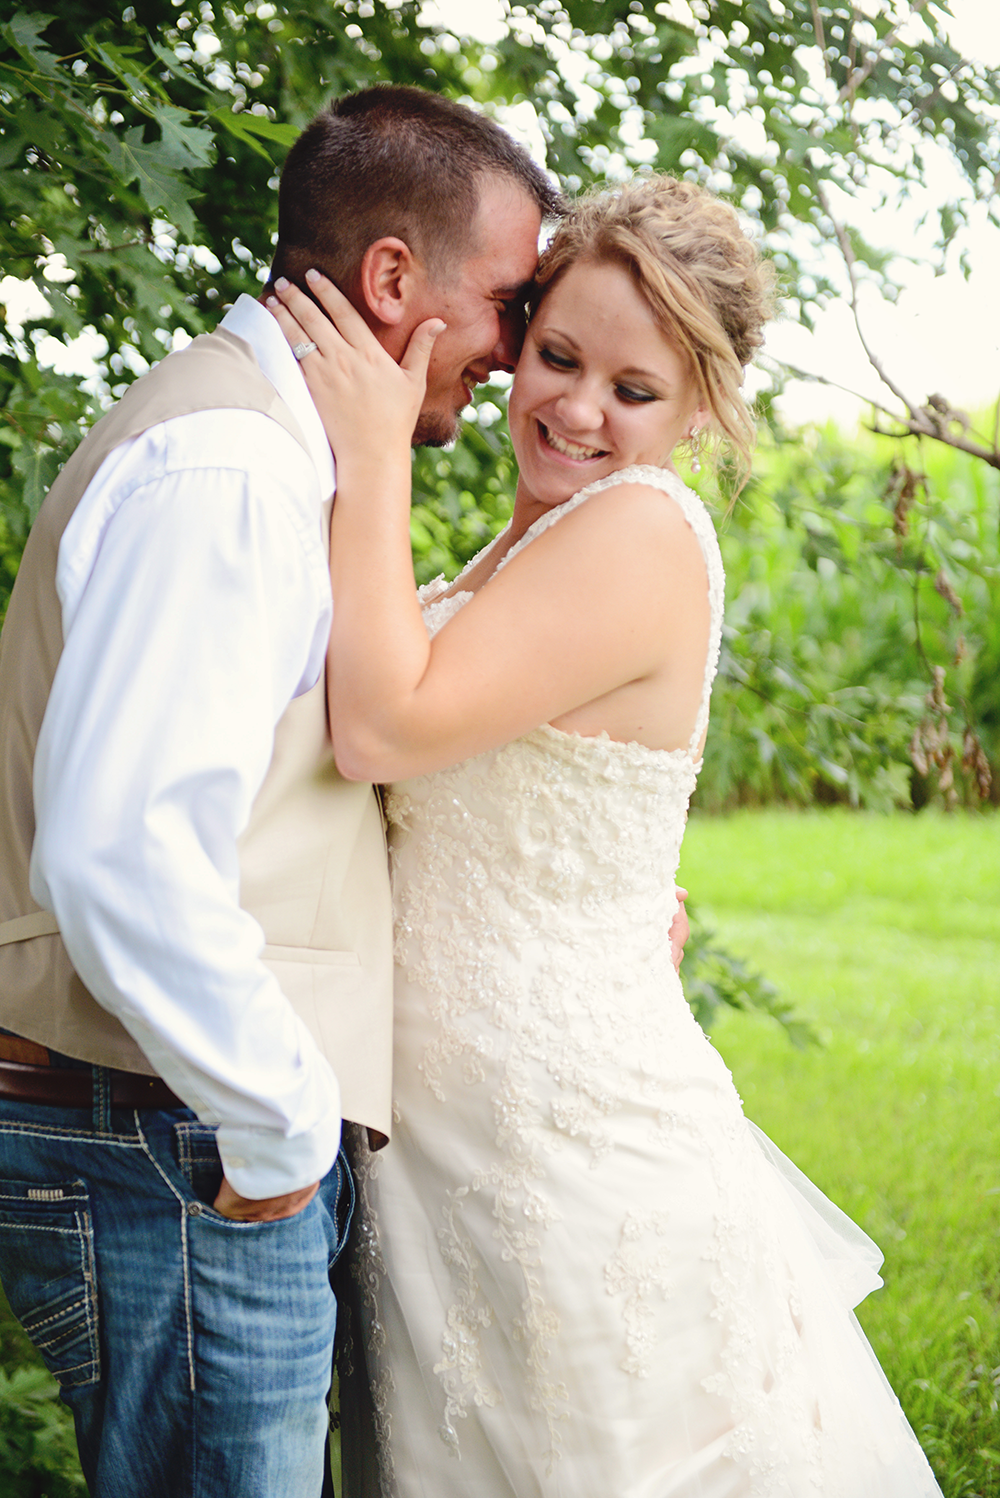 couples-poses-for-minnesota-wedding-day-holst